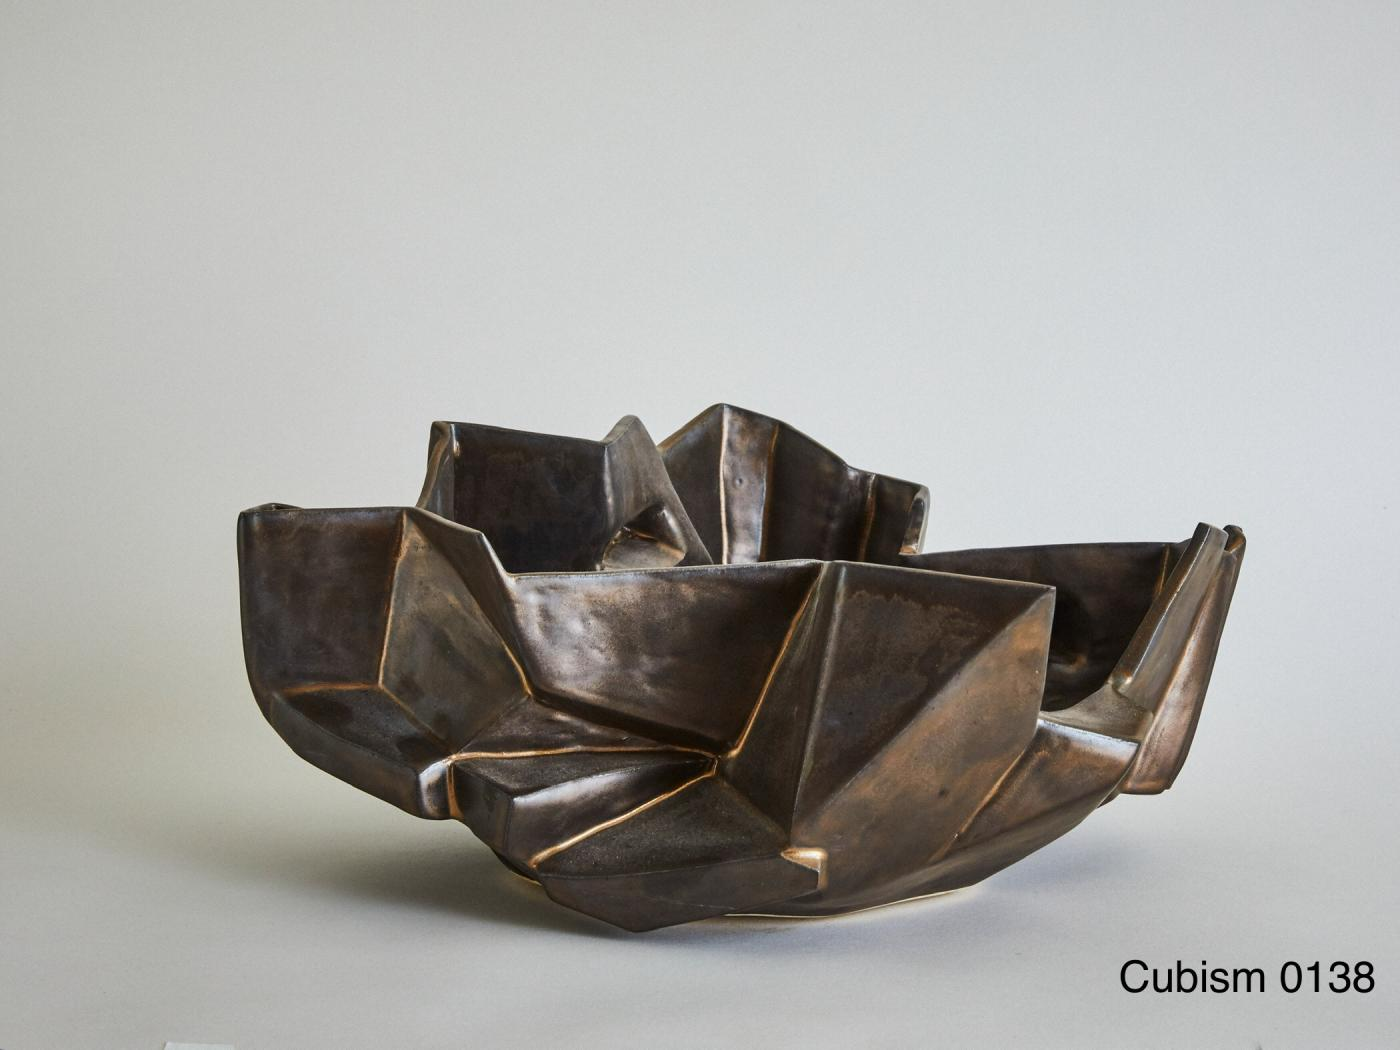 Wheel-thrown and manipulated cubist low vessel.